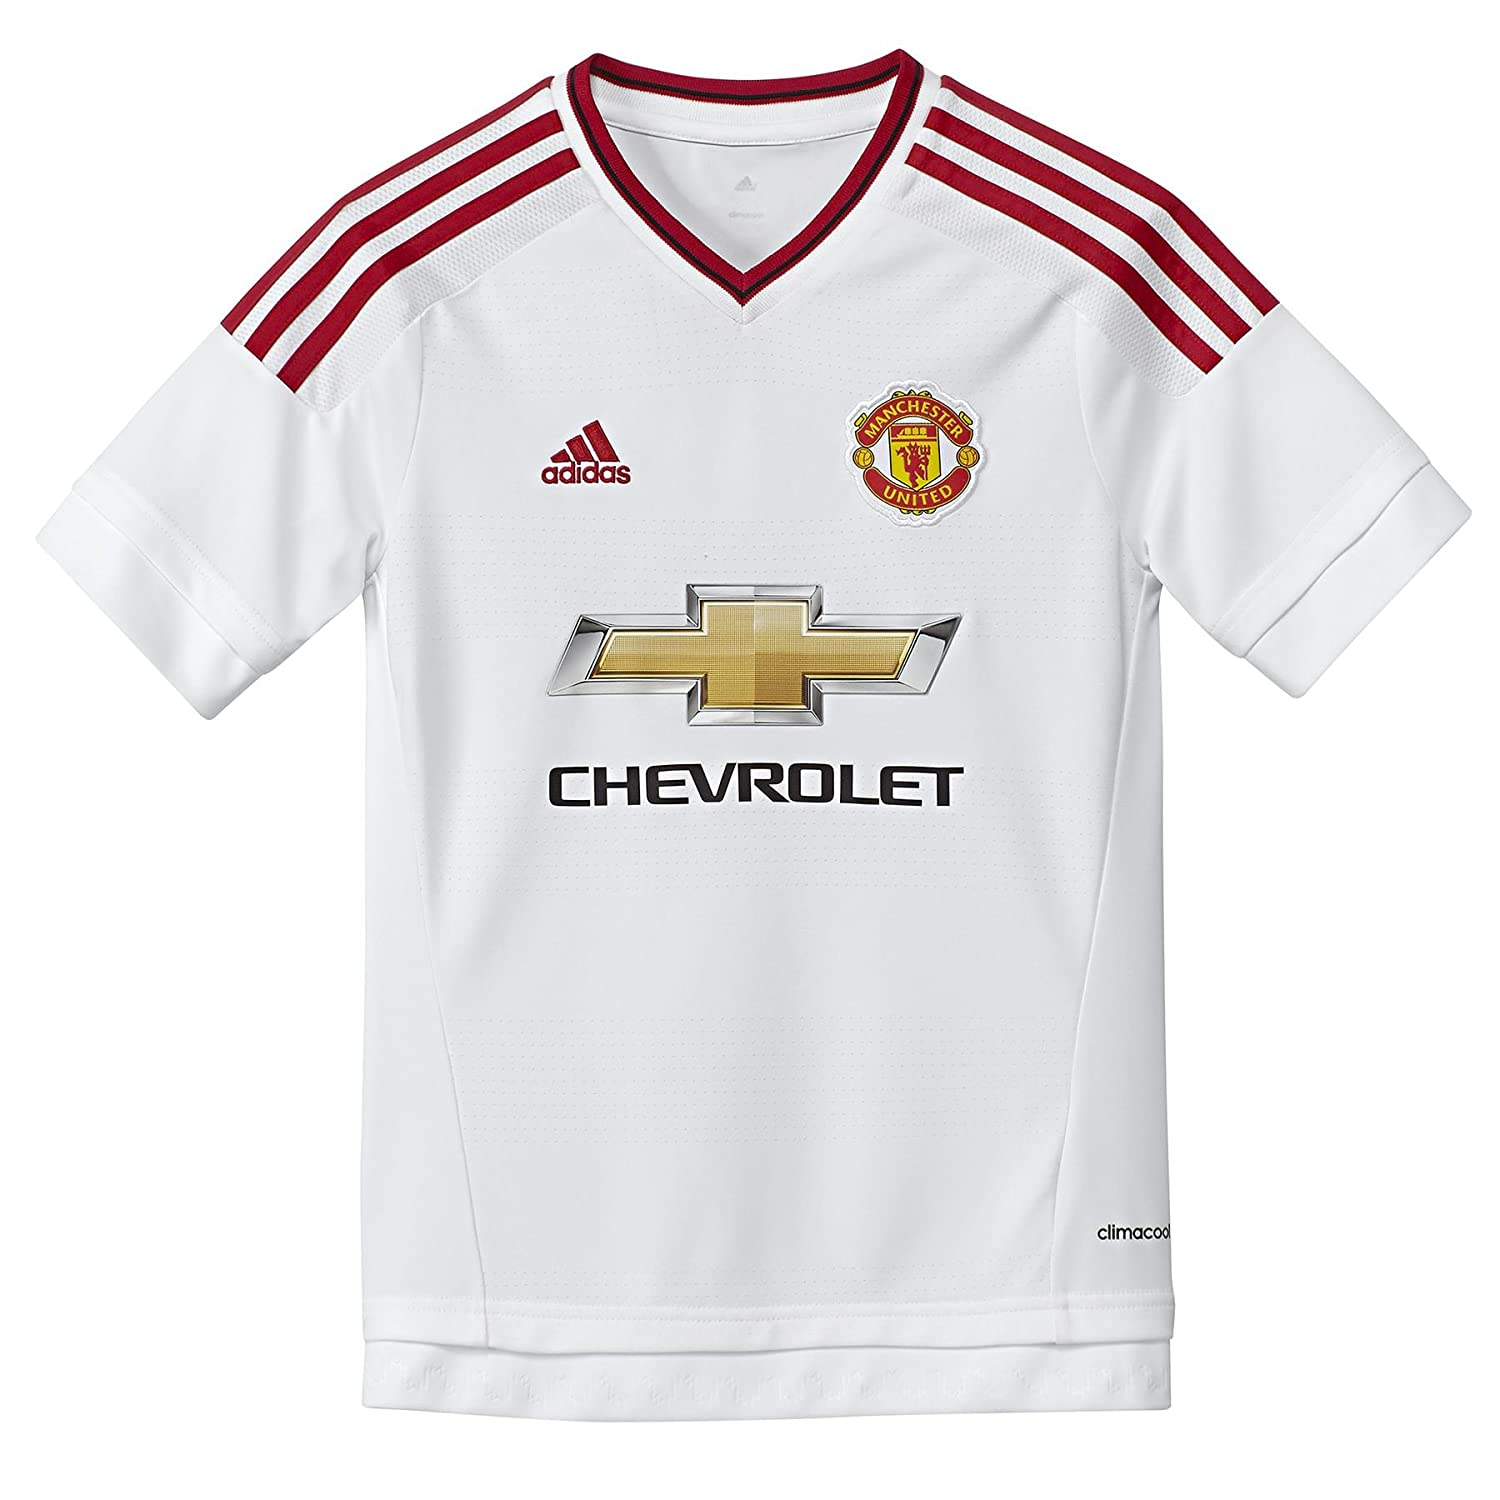 Adidas MUFC A JSY Y-Camiseta per Bambini, Colore: Bianco/Rosso adidas Performance